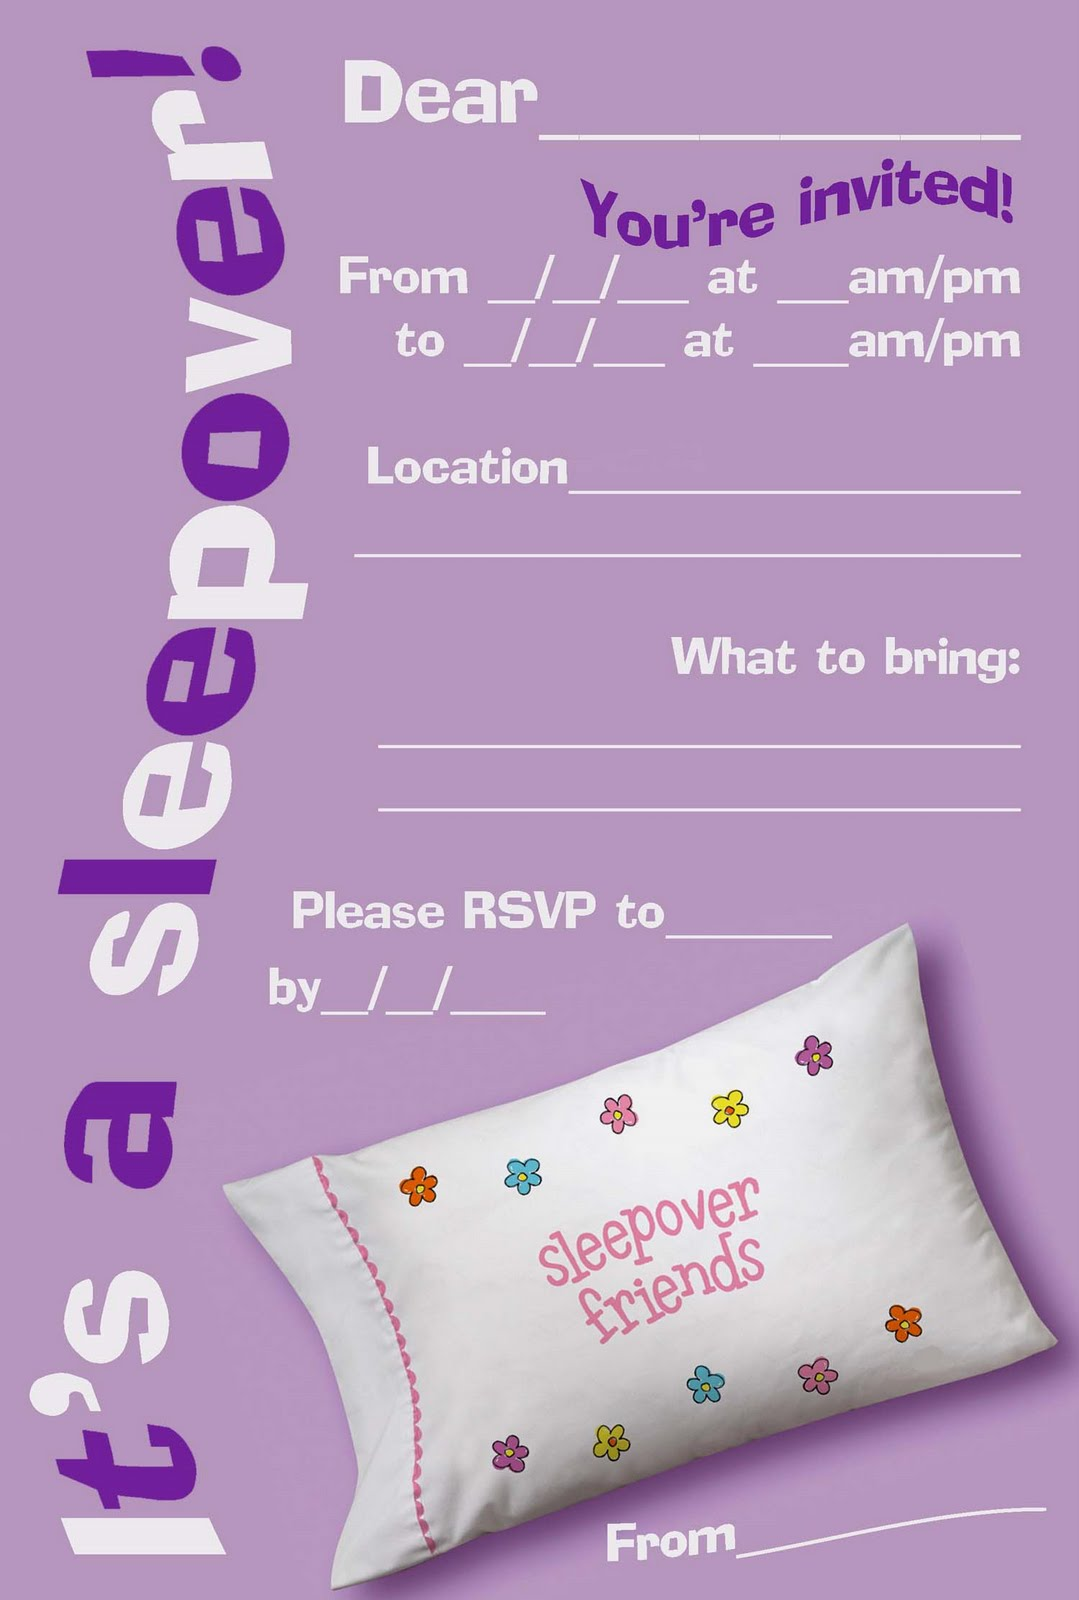 12 year old birthday invitations printable ; free-printable-sleepover-party-invitation-customizable-too_sleepover-birthday-party-invitations-free-printabl-on-party-invitations-happy-birthday-invitation-colourfull